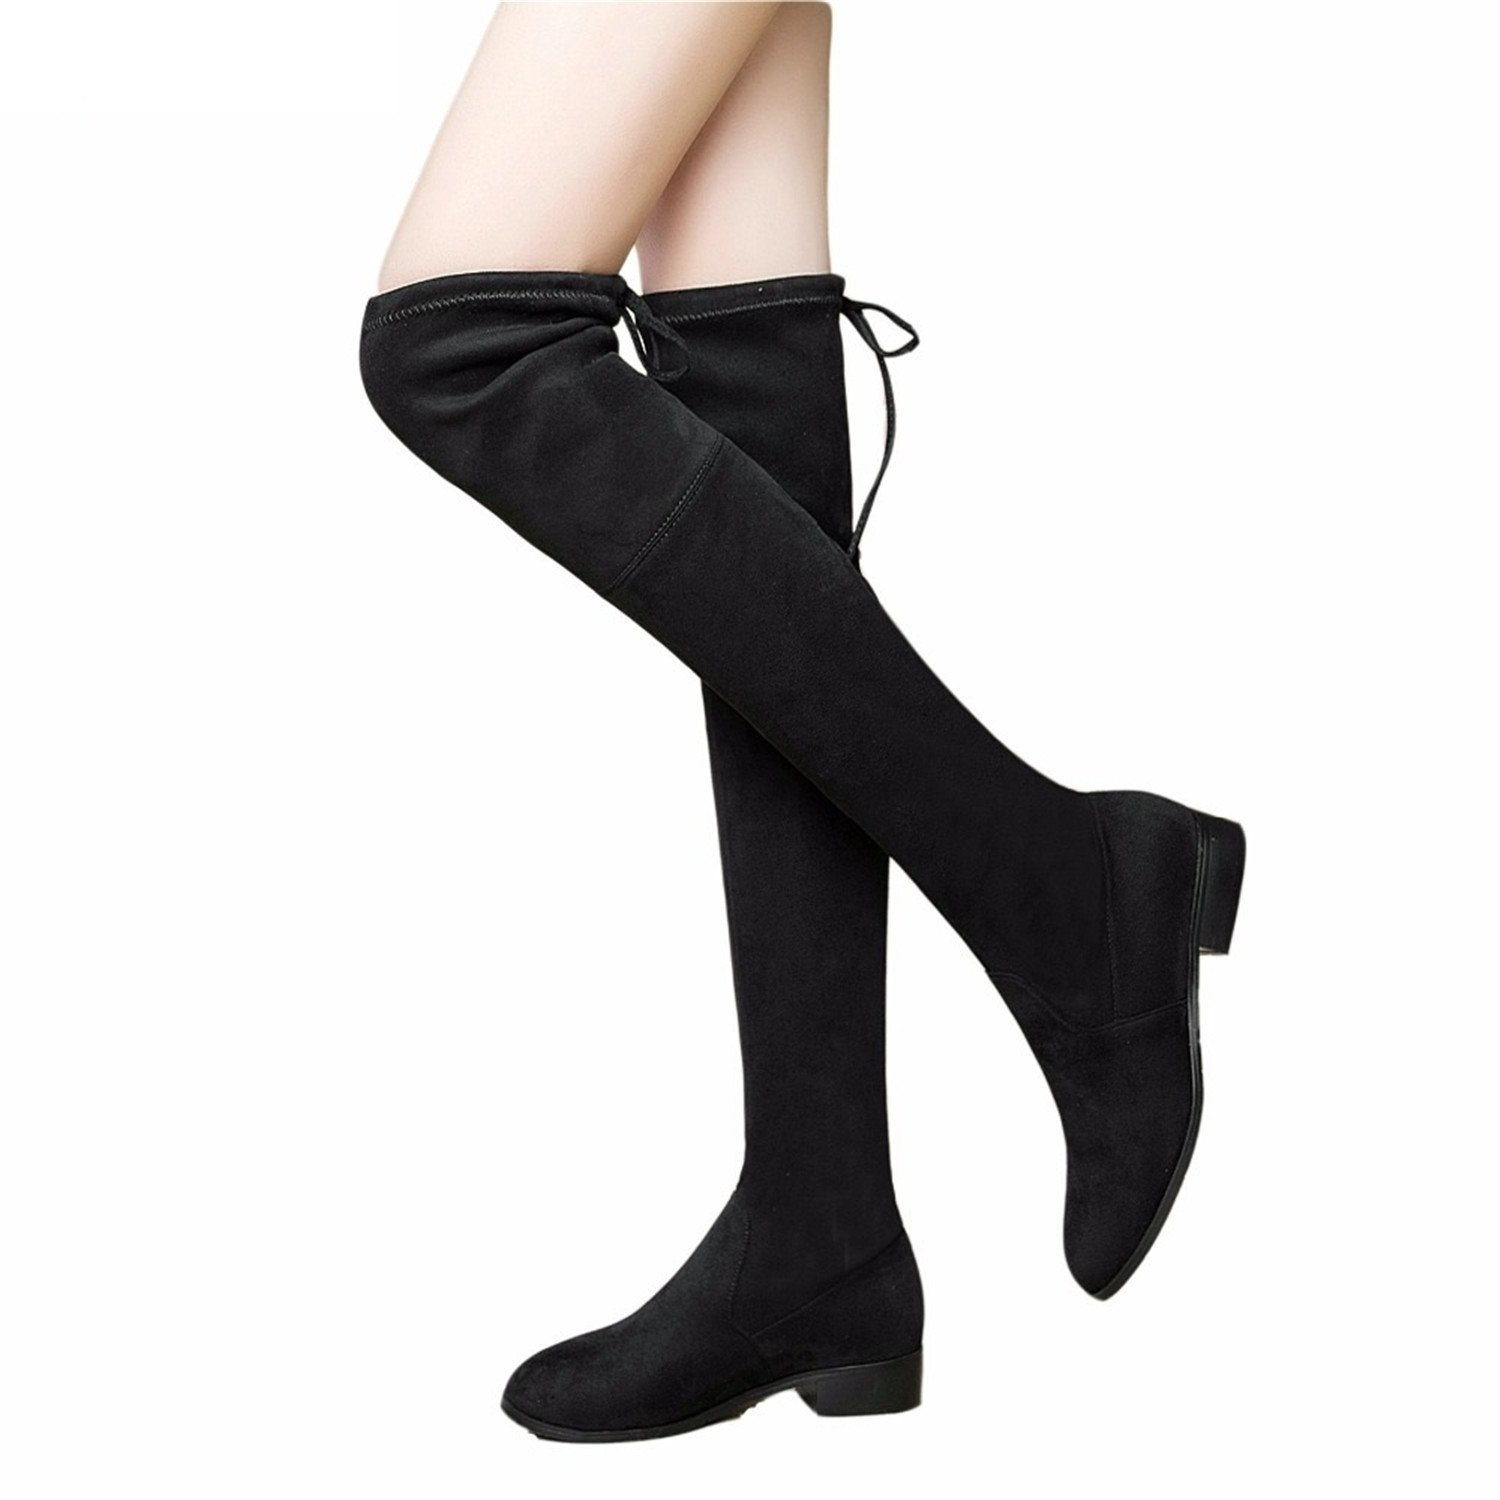 Dormery Ladies Shoes Square Low Heel Women Over The Knee Boots Scrub Black Pointed Toe Woman Motorcycle Boots Size 34-43